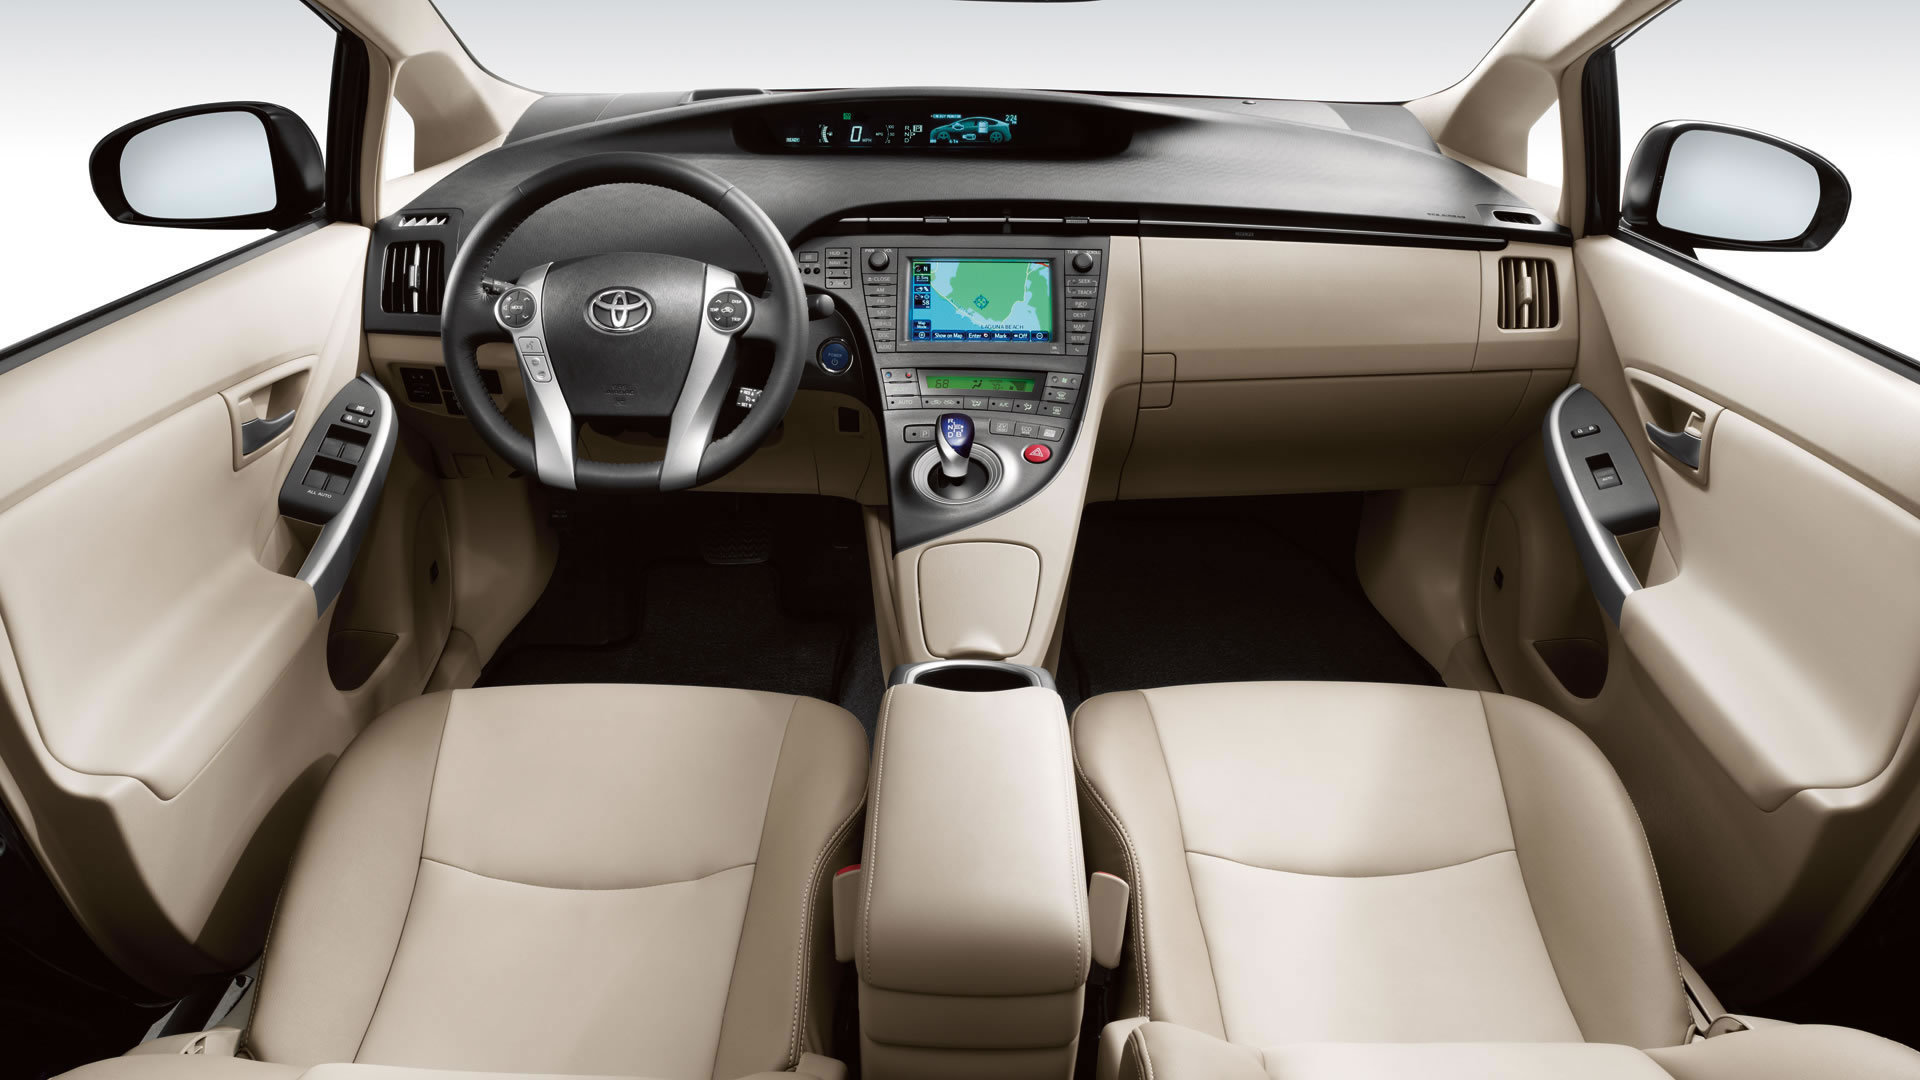 2015 toyota prius model information toyota of tacoma for Mercedes benz of modesto mchenry avenue modesto ca